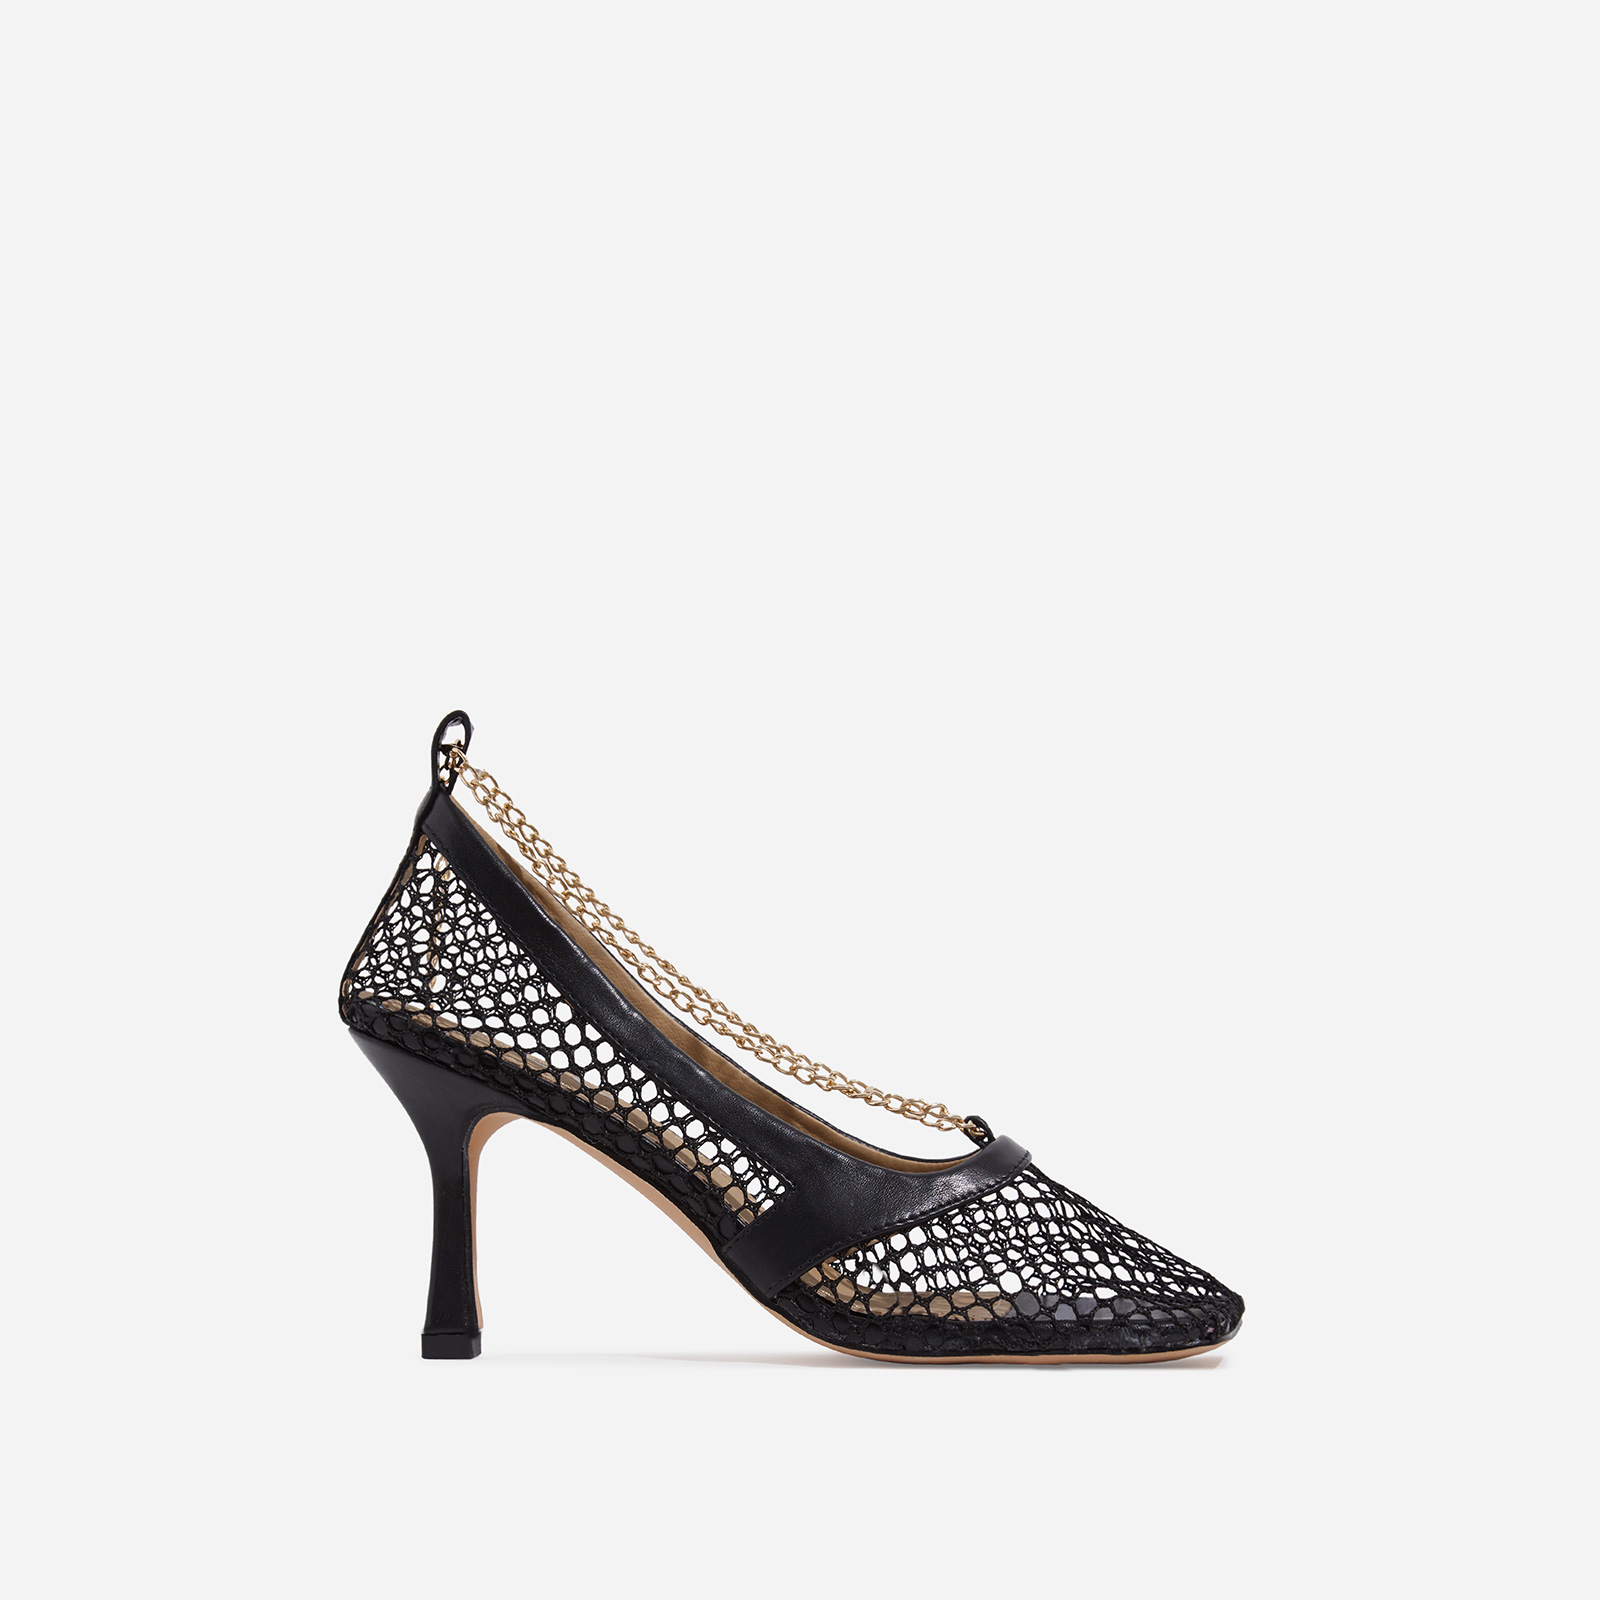 Montag Chain Detail Square Toe Fishnet Court Kitten Heel In Black Faux Leather